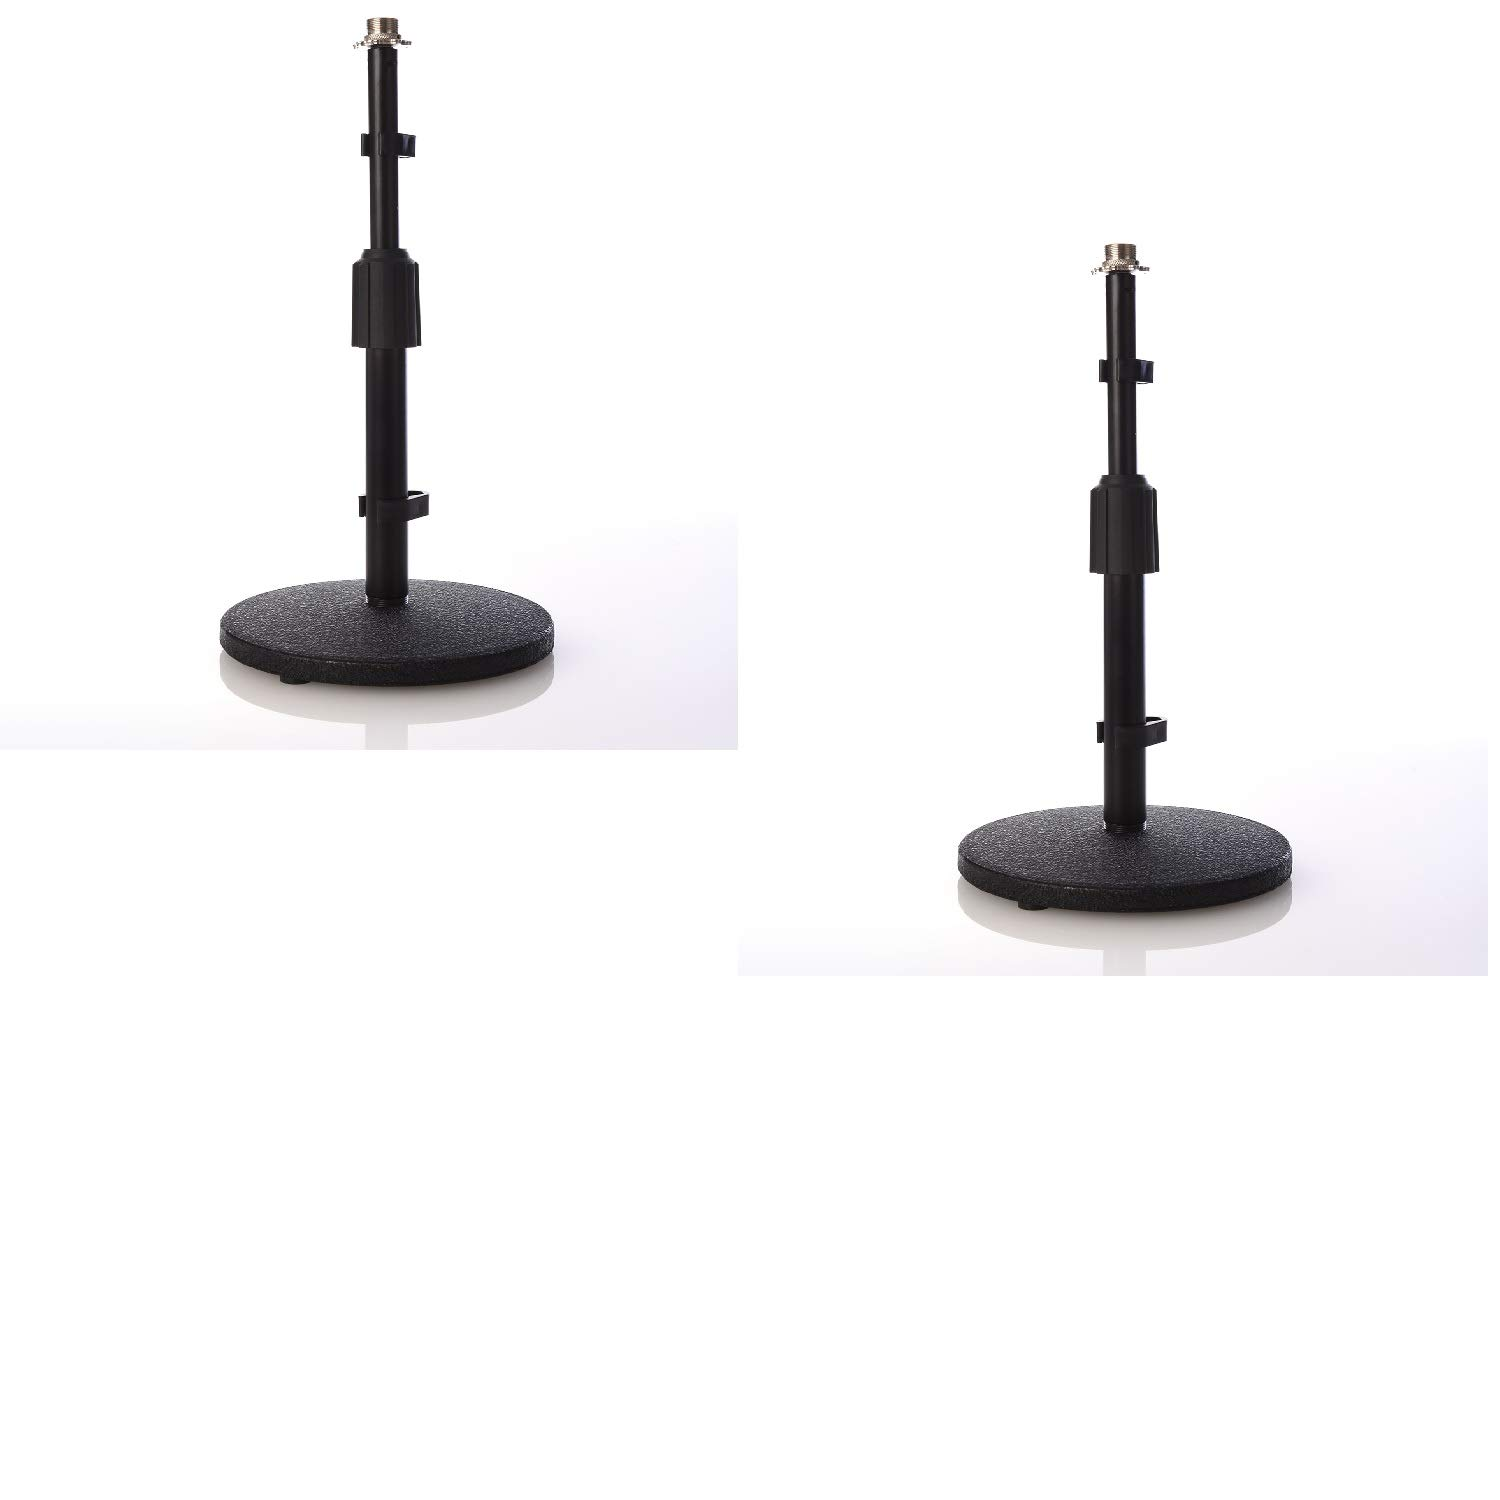 3//8-5//8 Adaptor Weighted Base LyxPro 2 Pack DKS-1 Desktop Microphone Stand Adjustable Height